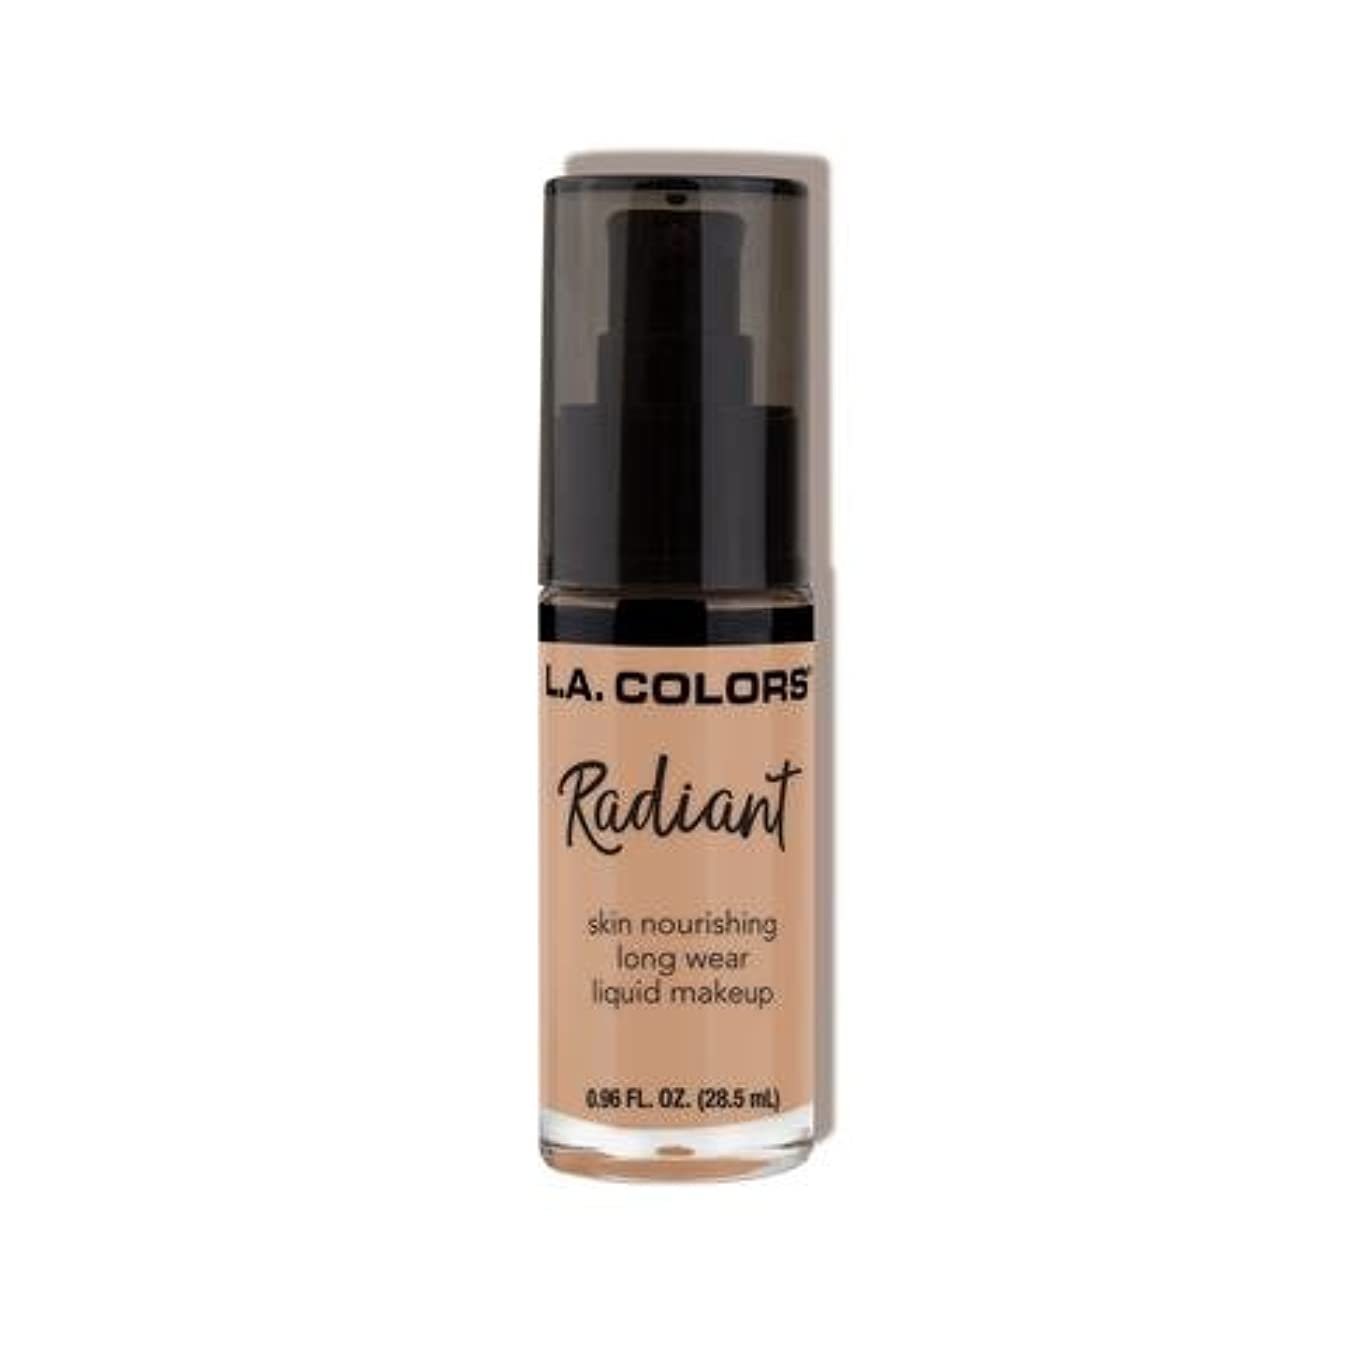 処分した兵士全体(3 Pack) L.A. COLORS Radiant Liquid Makeup - Medium Tan (並行輸入品)